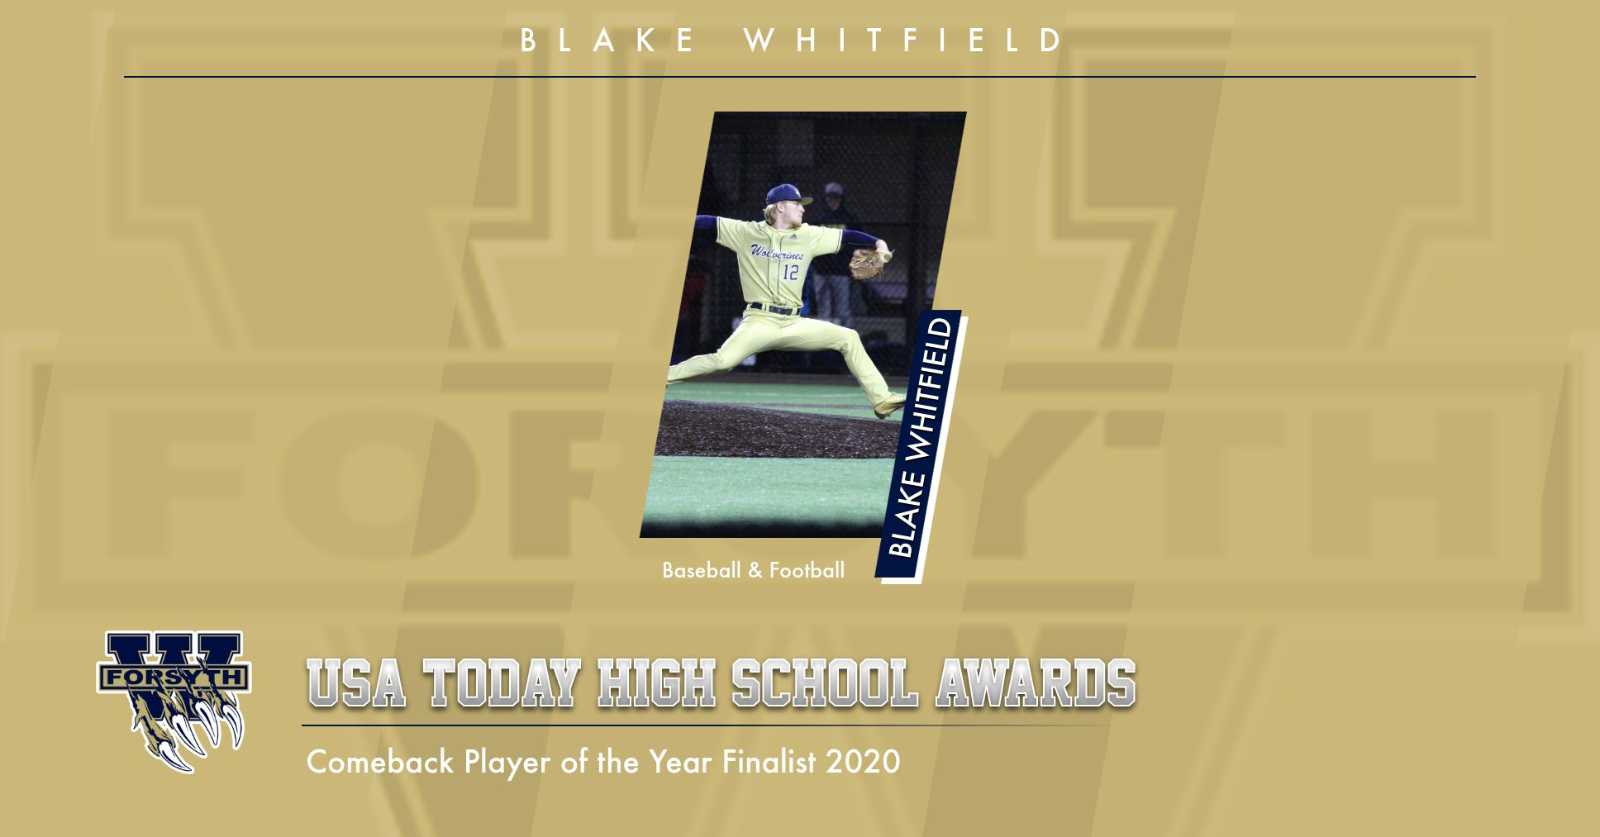 Blake Whitfield named USA Today Finalist for High School Comeback Player of the Year!